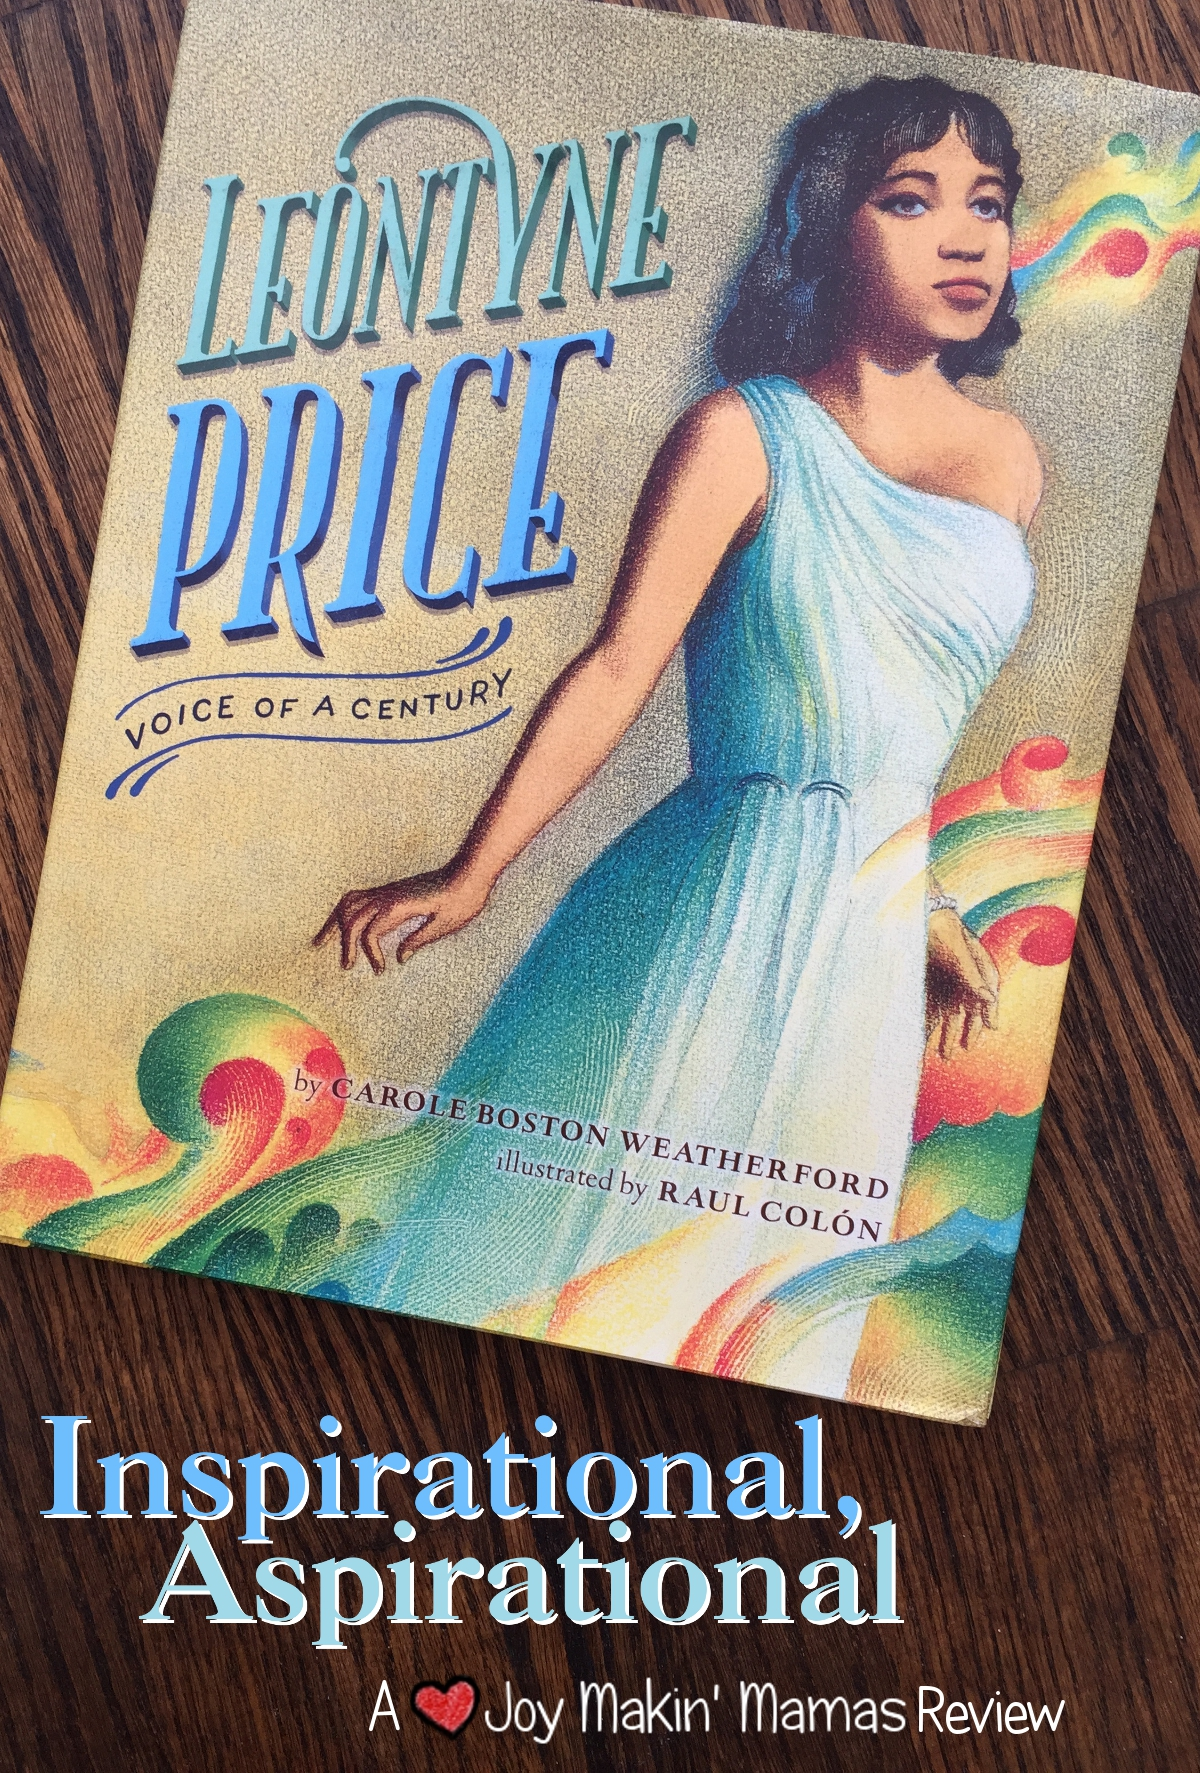 Leontyne Price Inspirational Aspirational Joy Makin' Mamas Review